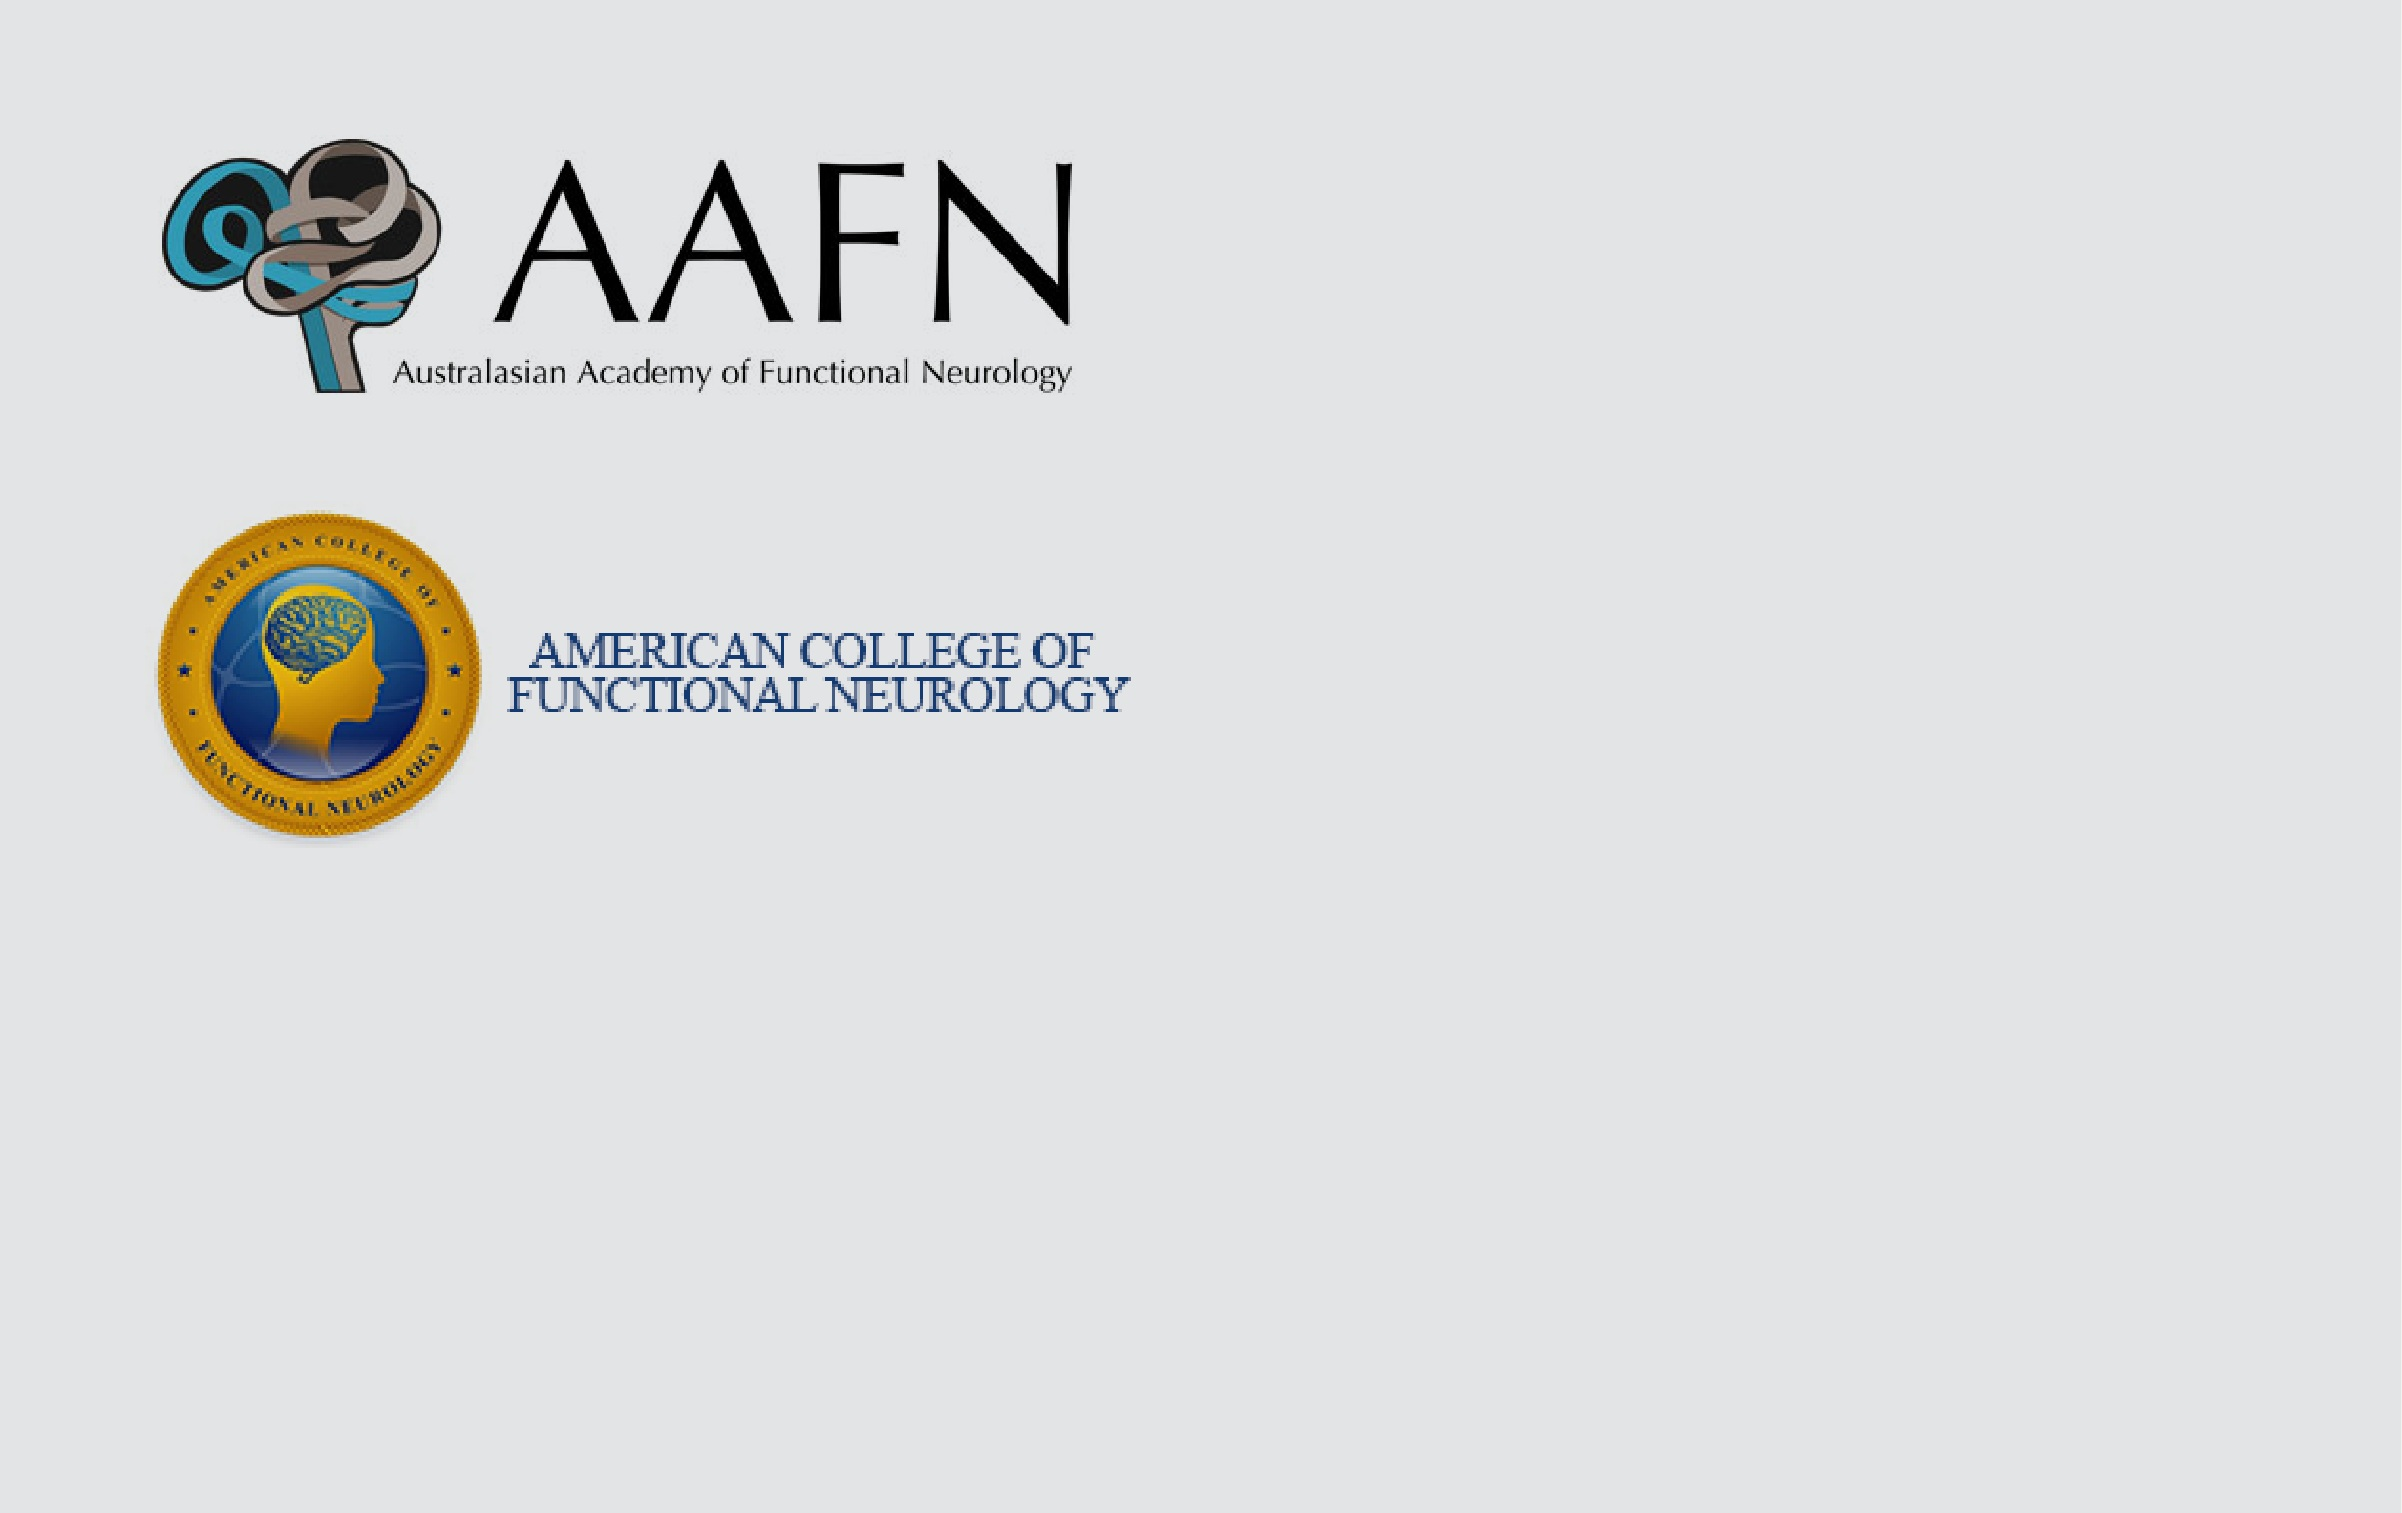 Fellowships - Australasian Academy of Functional Neurology and the American College of Functional Neurology.Current Chairman of the advisory committee of the Australasian Institute of Clinical Neuroscience.